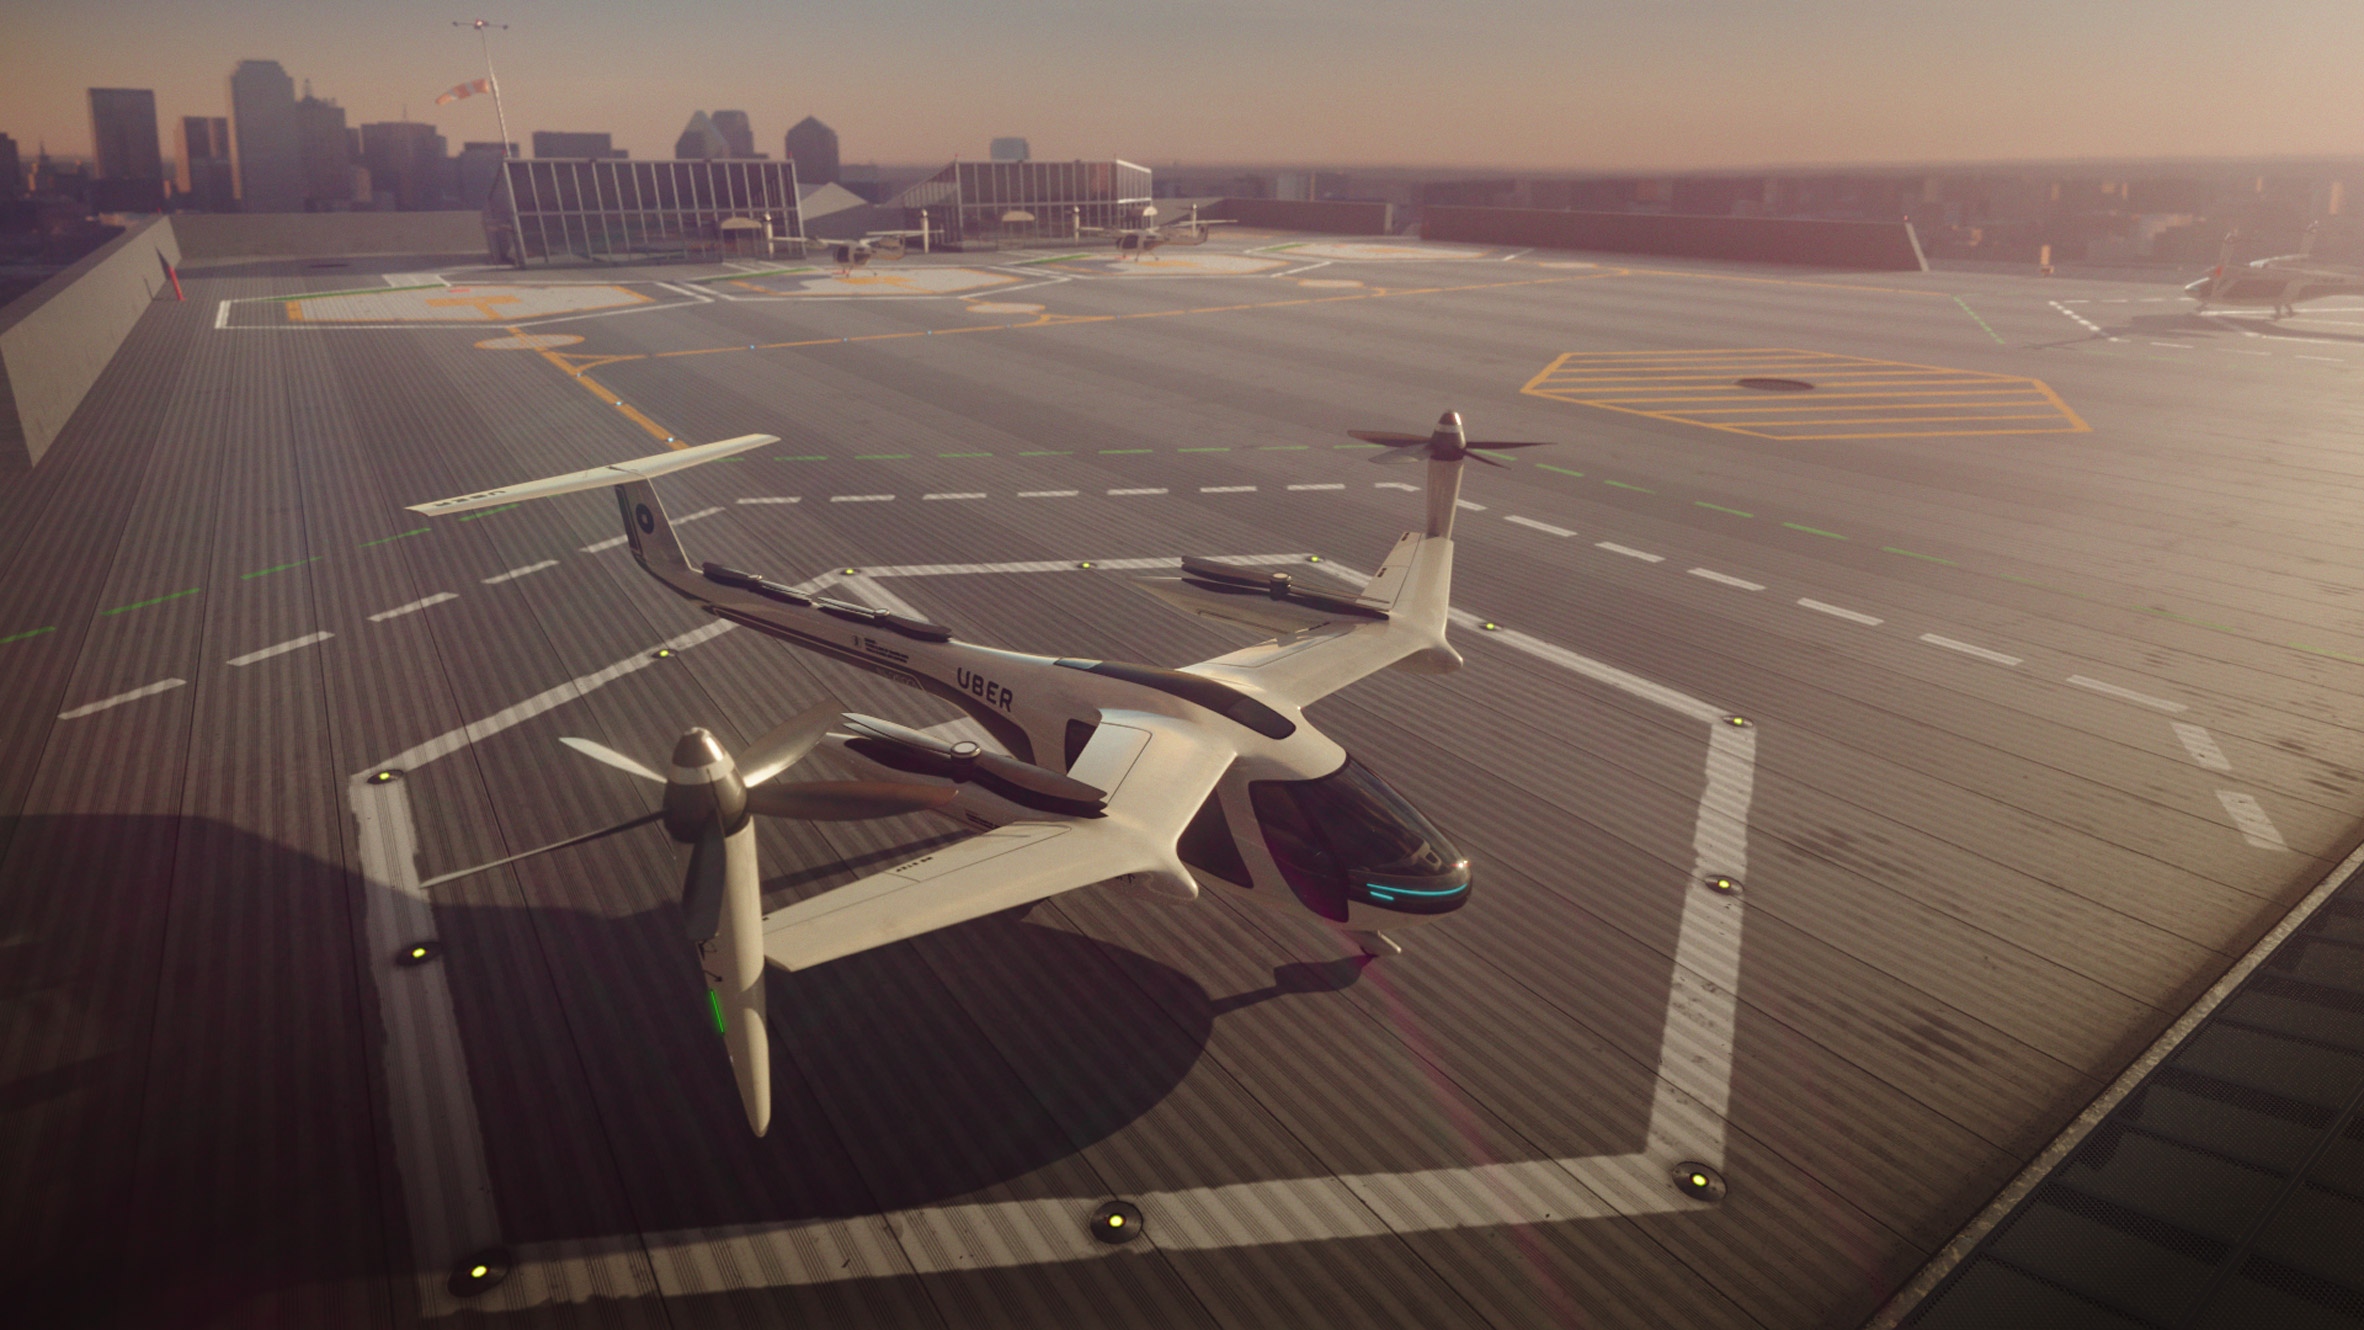 Uber and NASA to launch flying taxi service by 2020